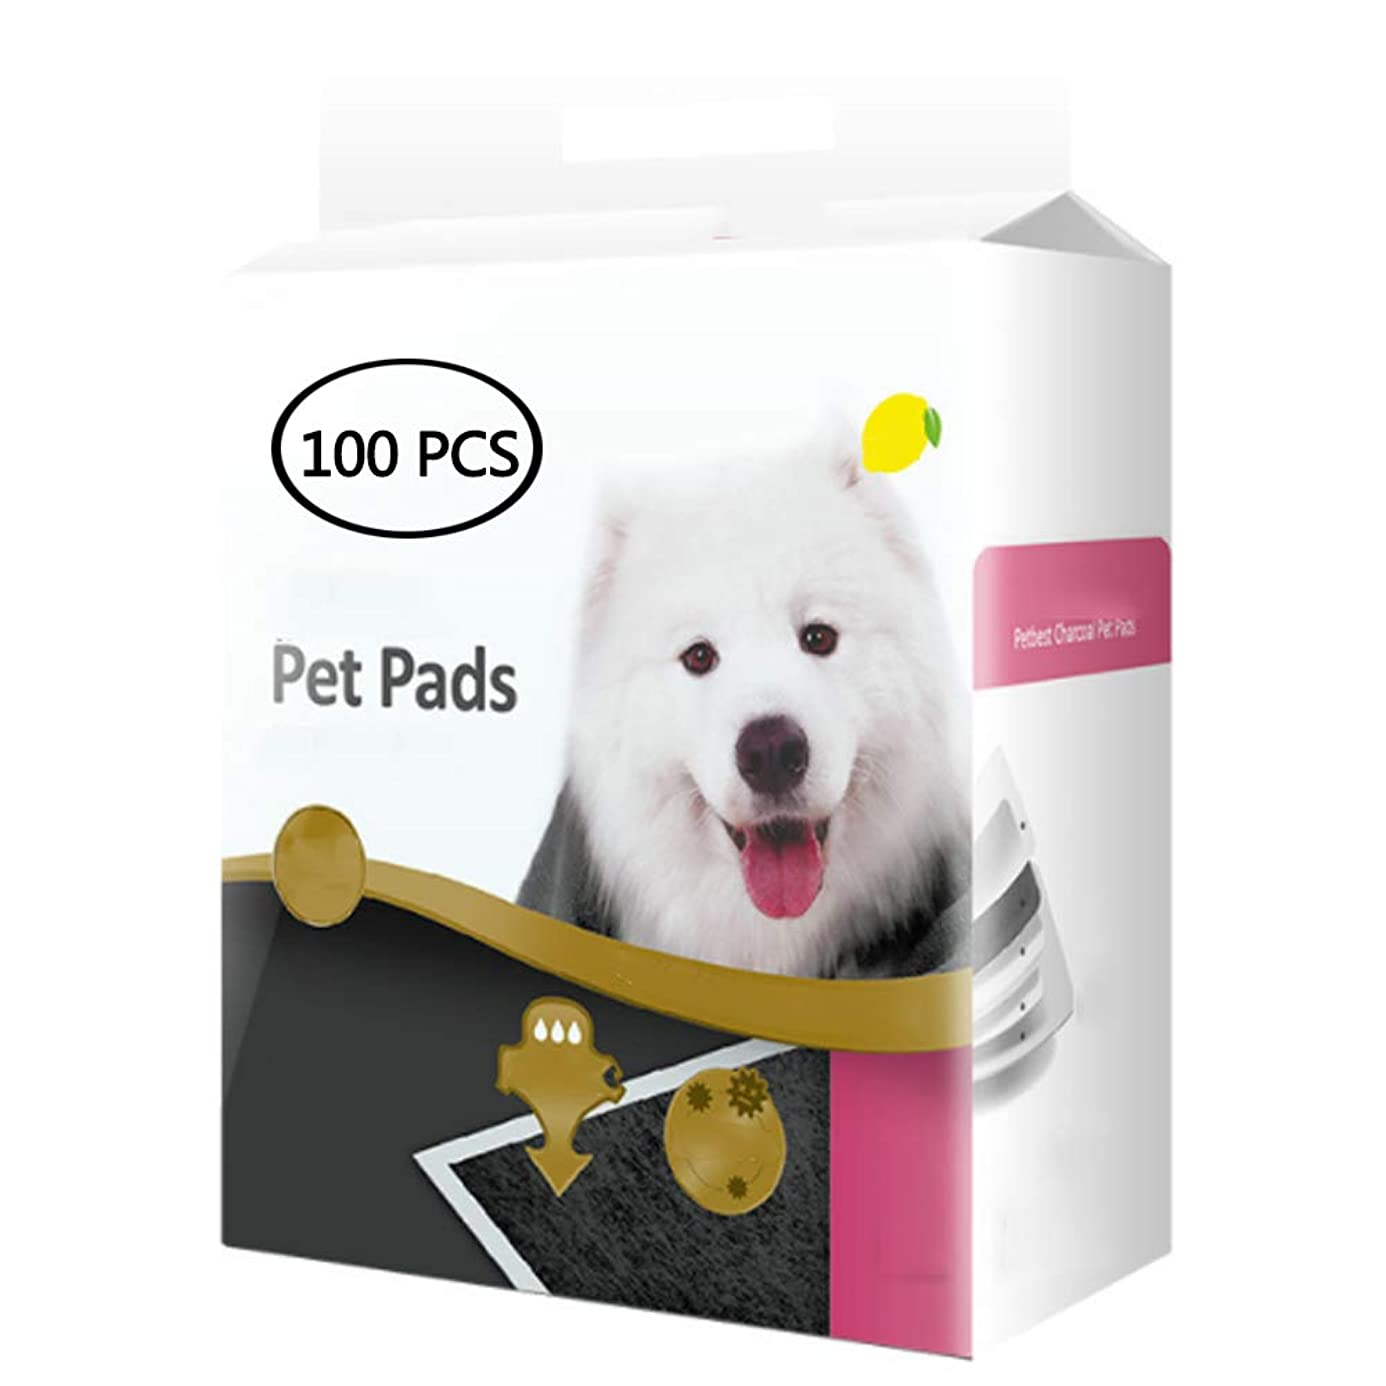 Carbon Pet Training and Puppy Pads with Instant Water Absorption, Lemon Astringency, Bamboo Charcoal Fiber for Pet Mats